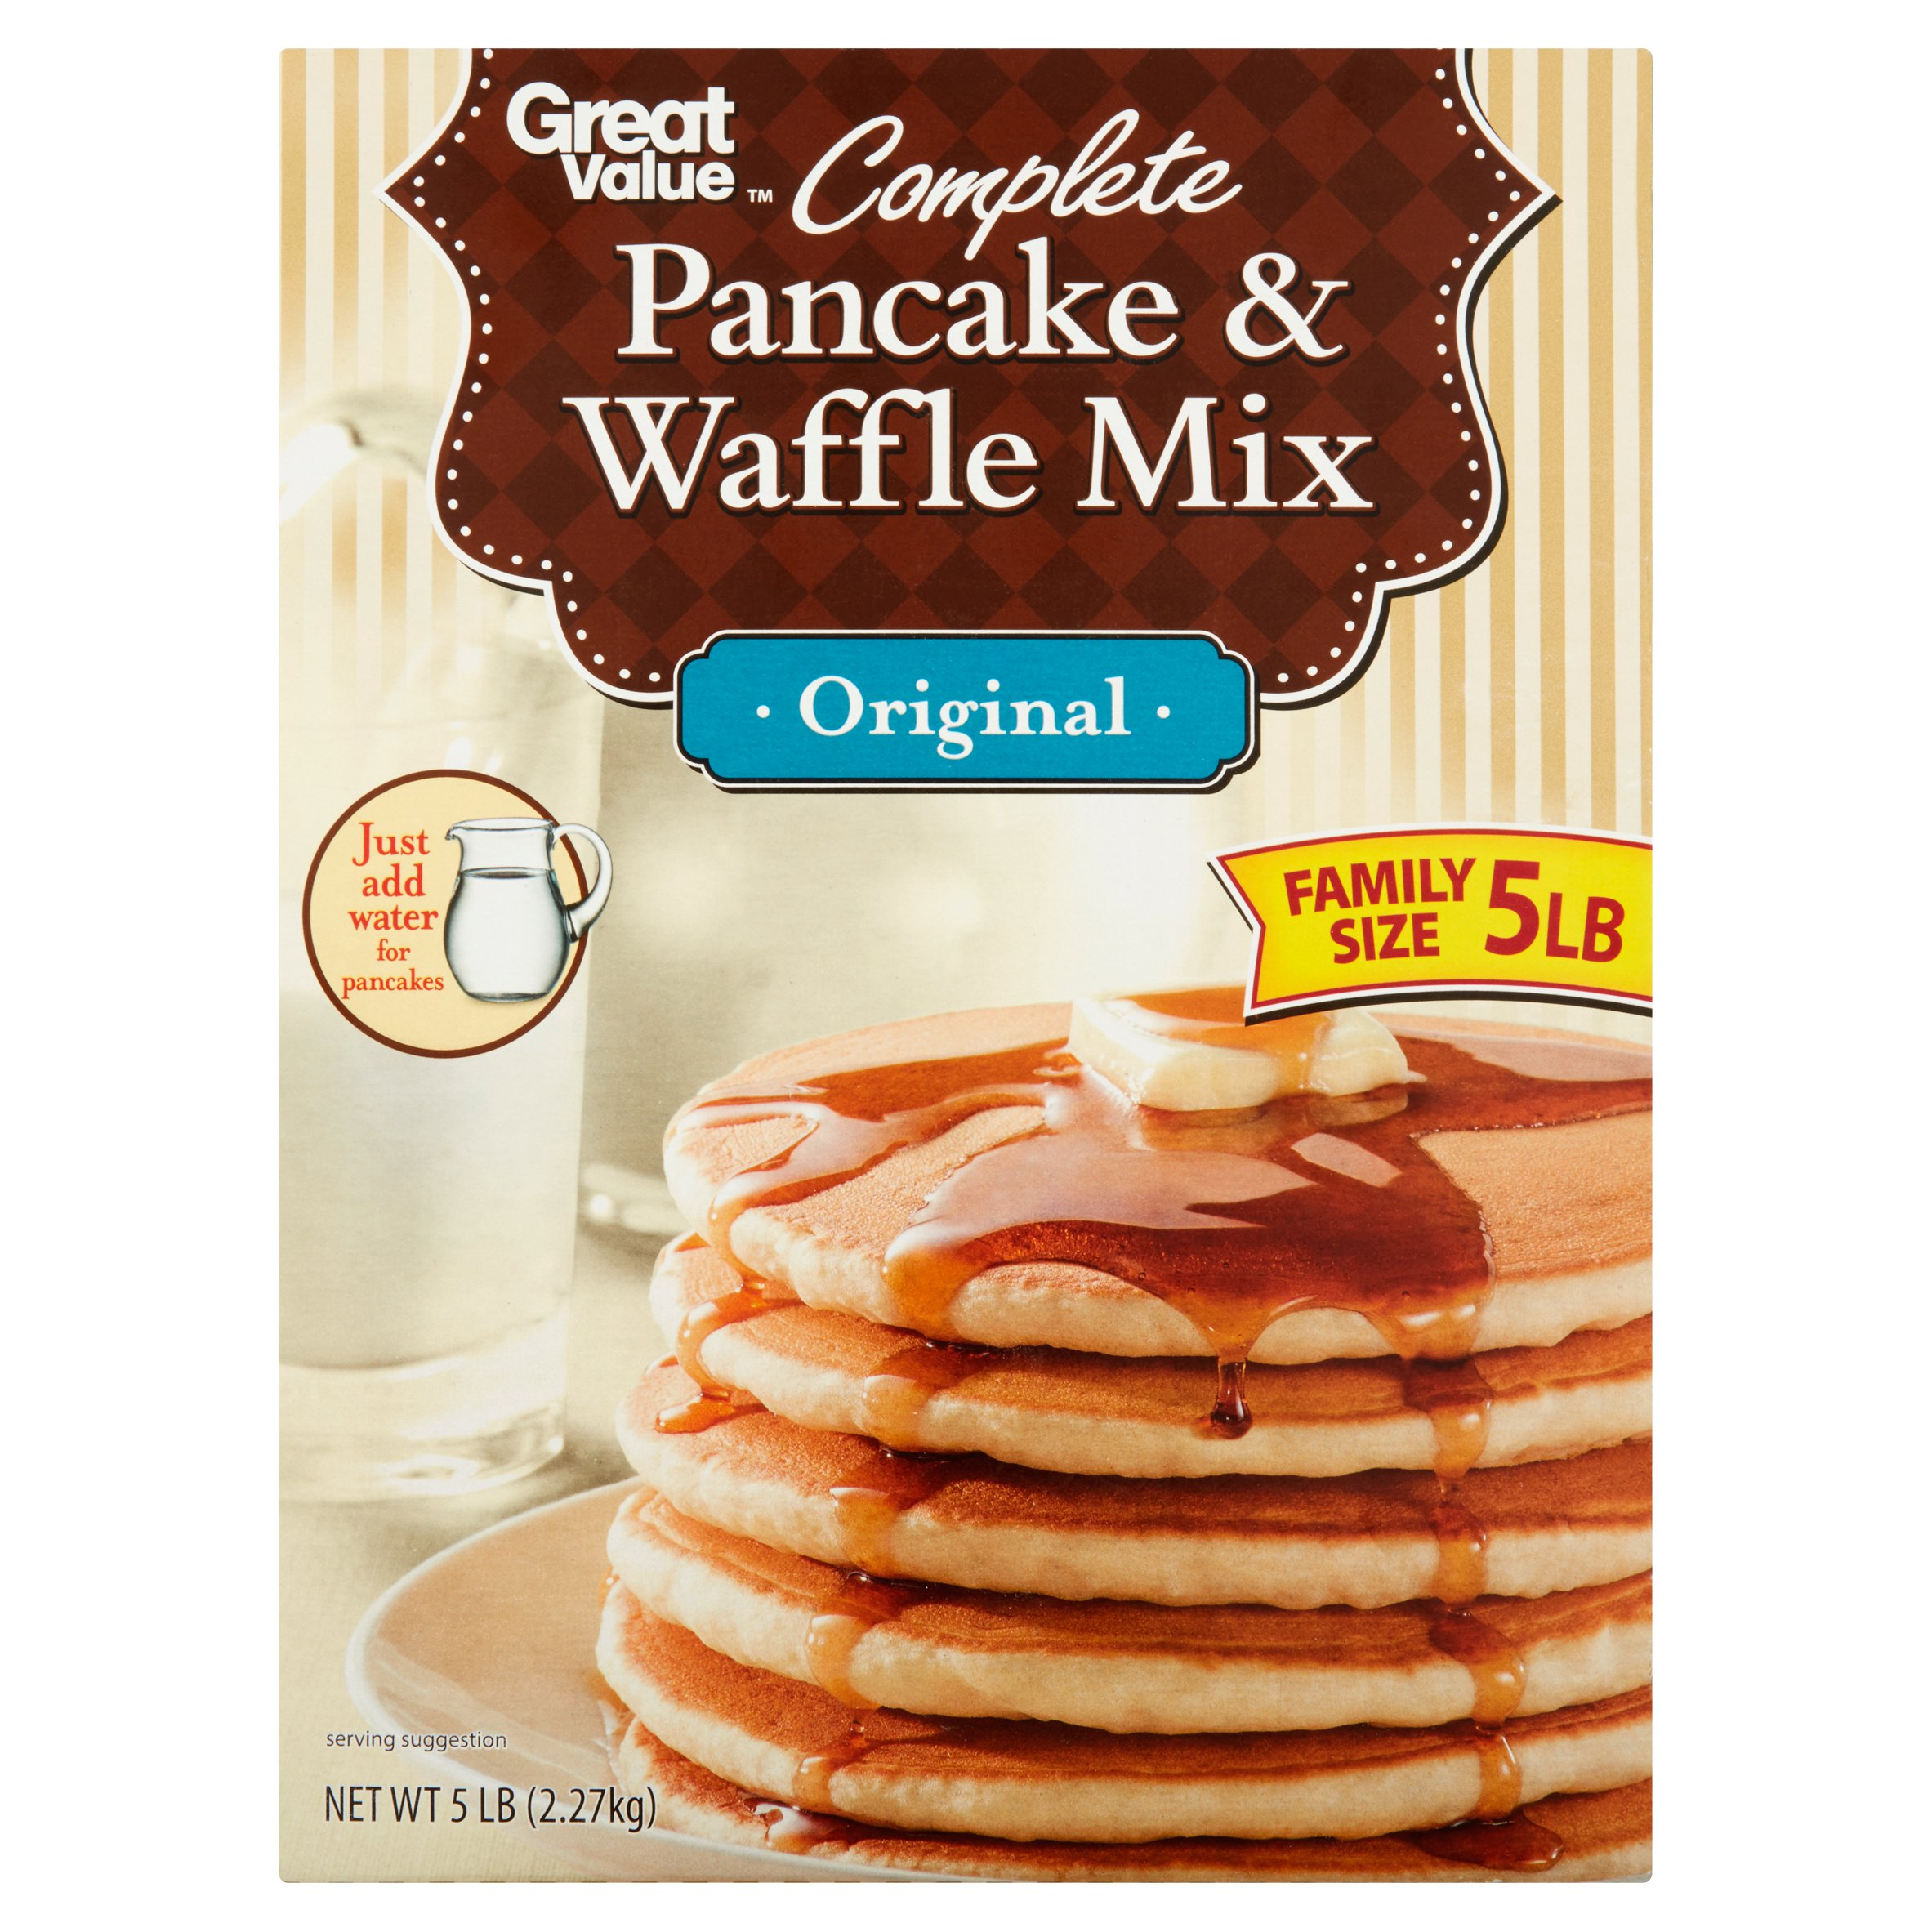 Great Value Complete Original Pancake & Waffle Mix Family Size, 5 lb by Wal-Mart Stores, Inc.